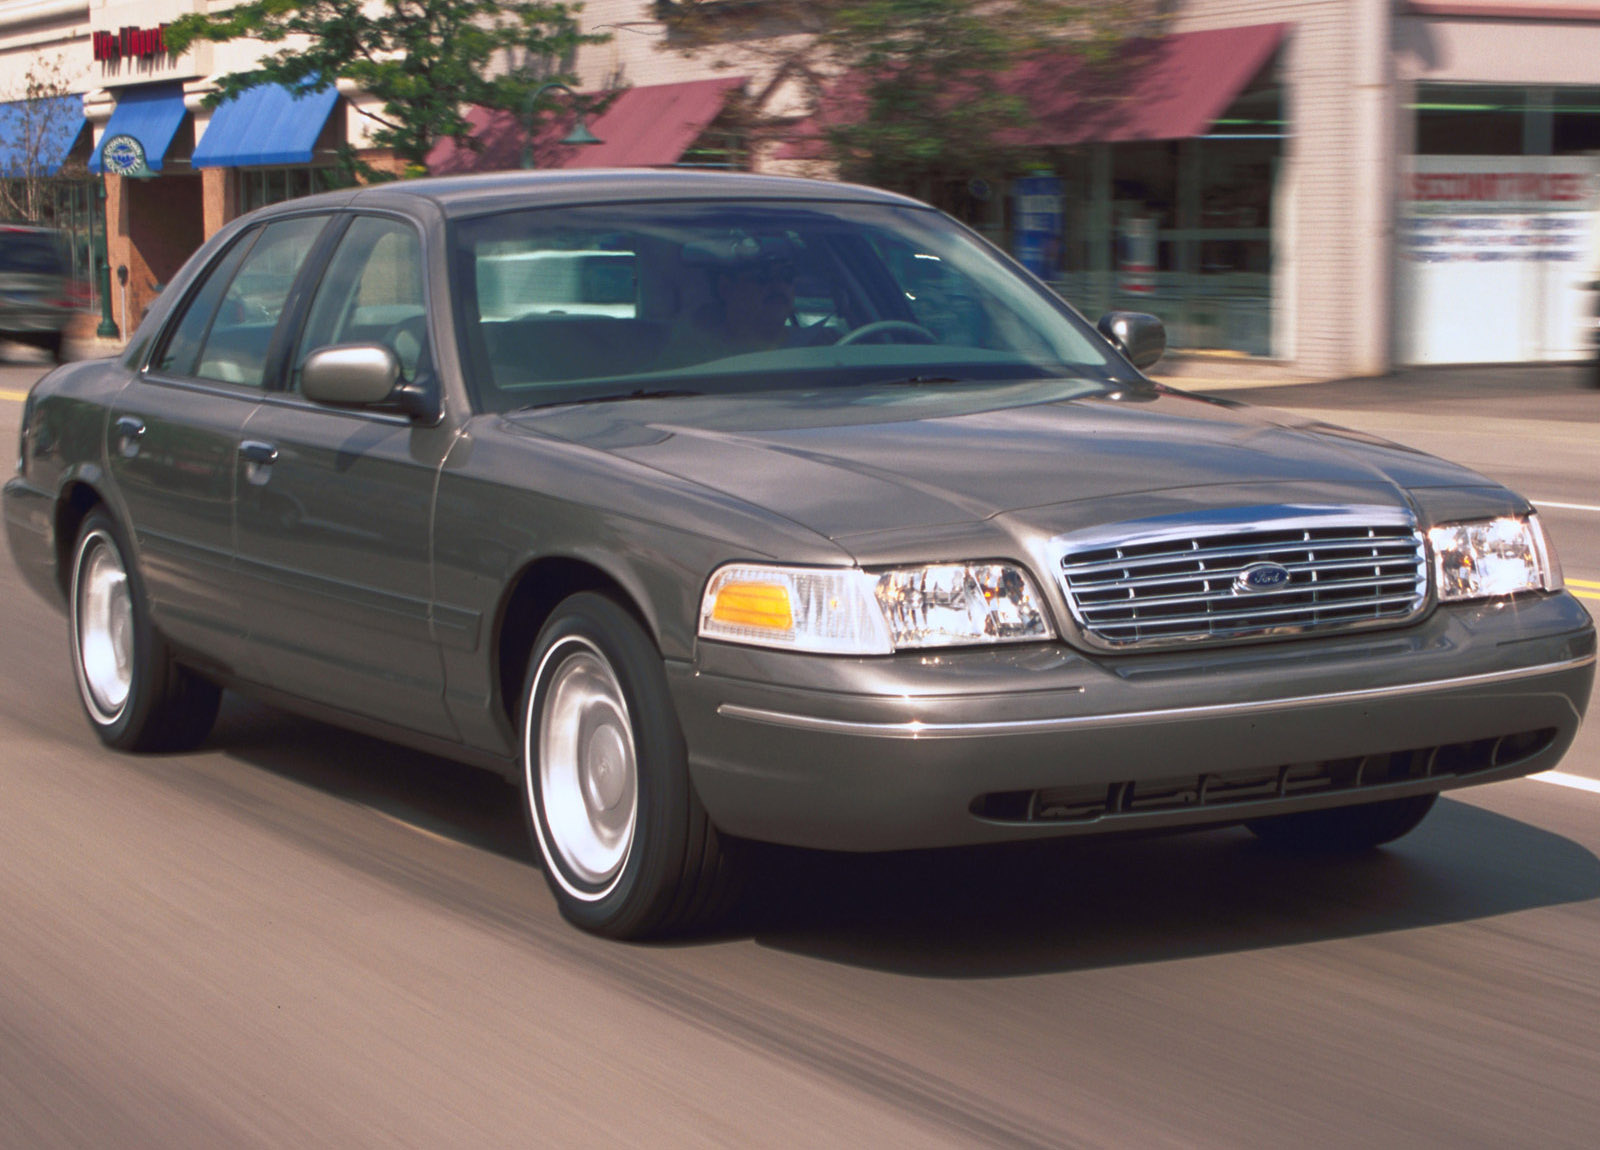 2001 Ford Crown Victoria Hd Pictures Carsinvasion Com